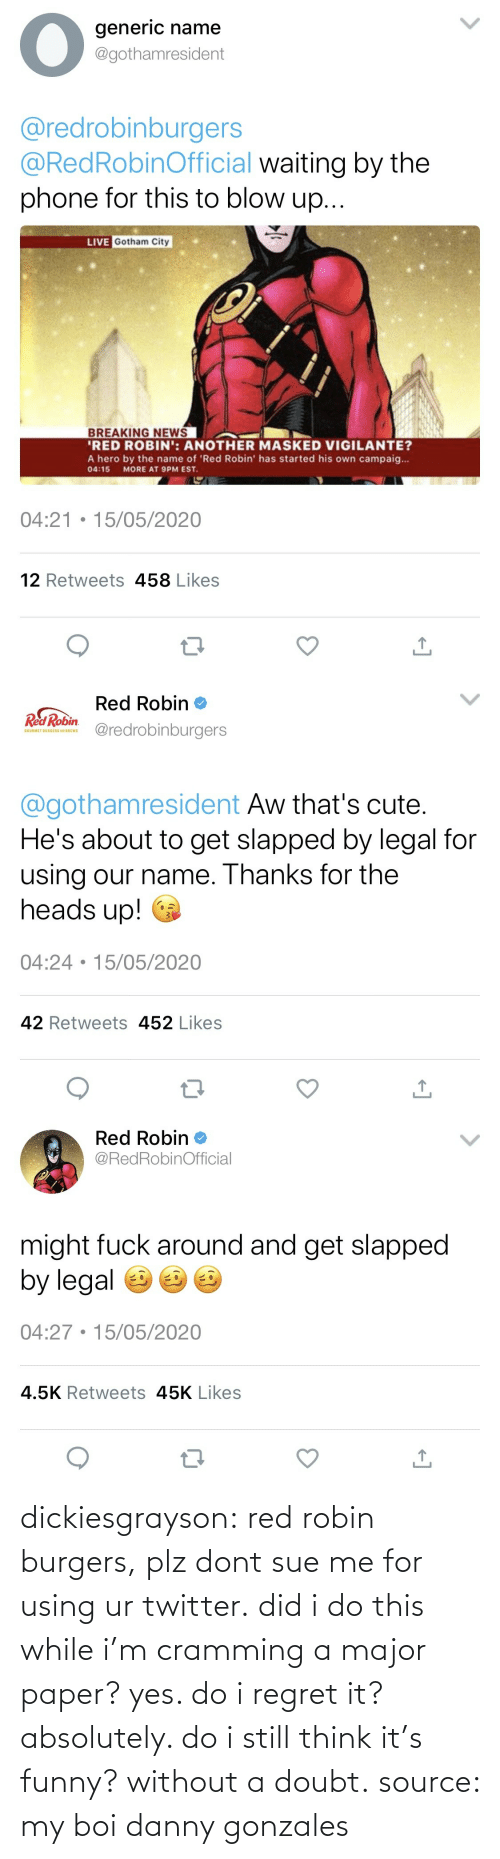 danny: dickiesgrayson:  red robin burgers, plz dont sue me for using ur twitter. did i do this while i'm cramming a major paper? yes. do i regret it? absolutely. do i still think it's funny? without a doubt. source: my boi danny gonzales